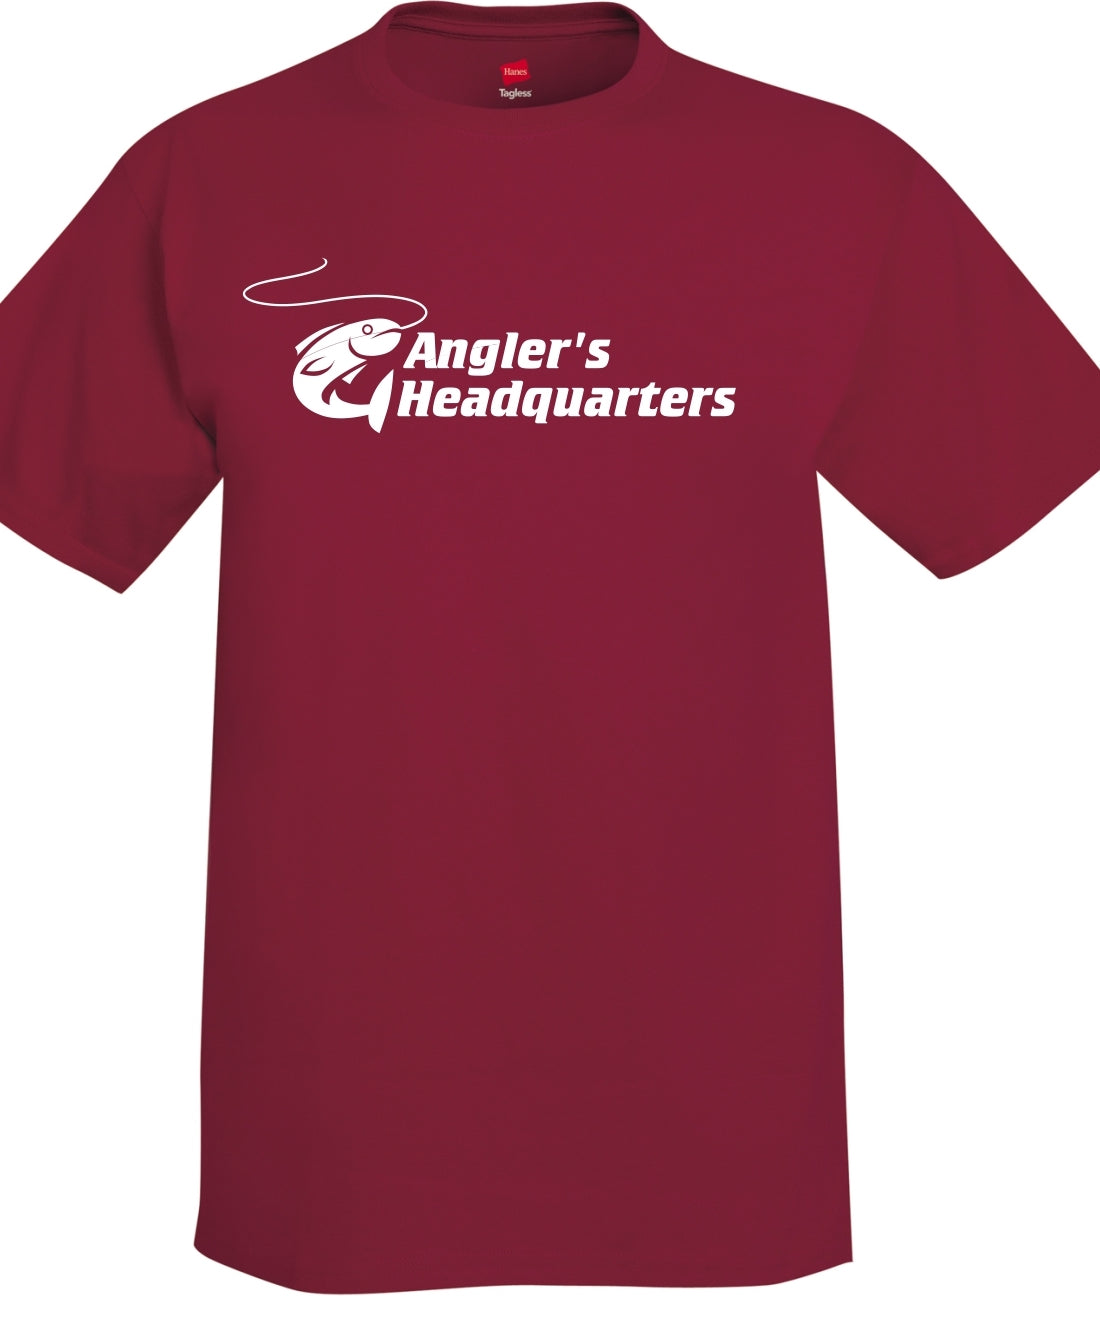 Angler's Headquarters Shirts (Youth Sizes) - Angler's Headquarters